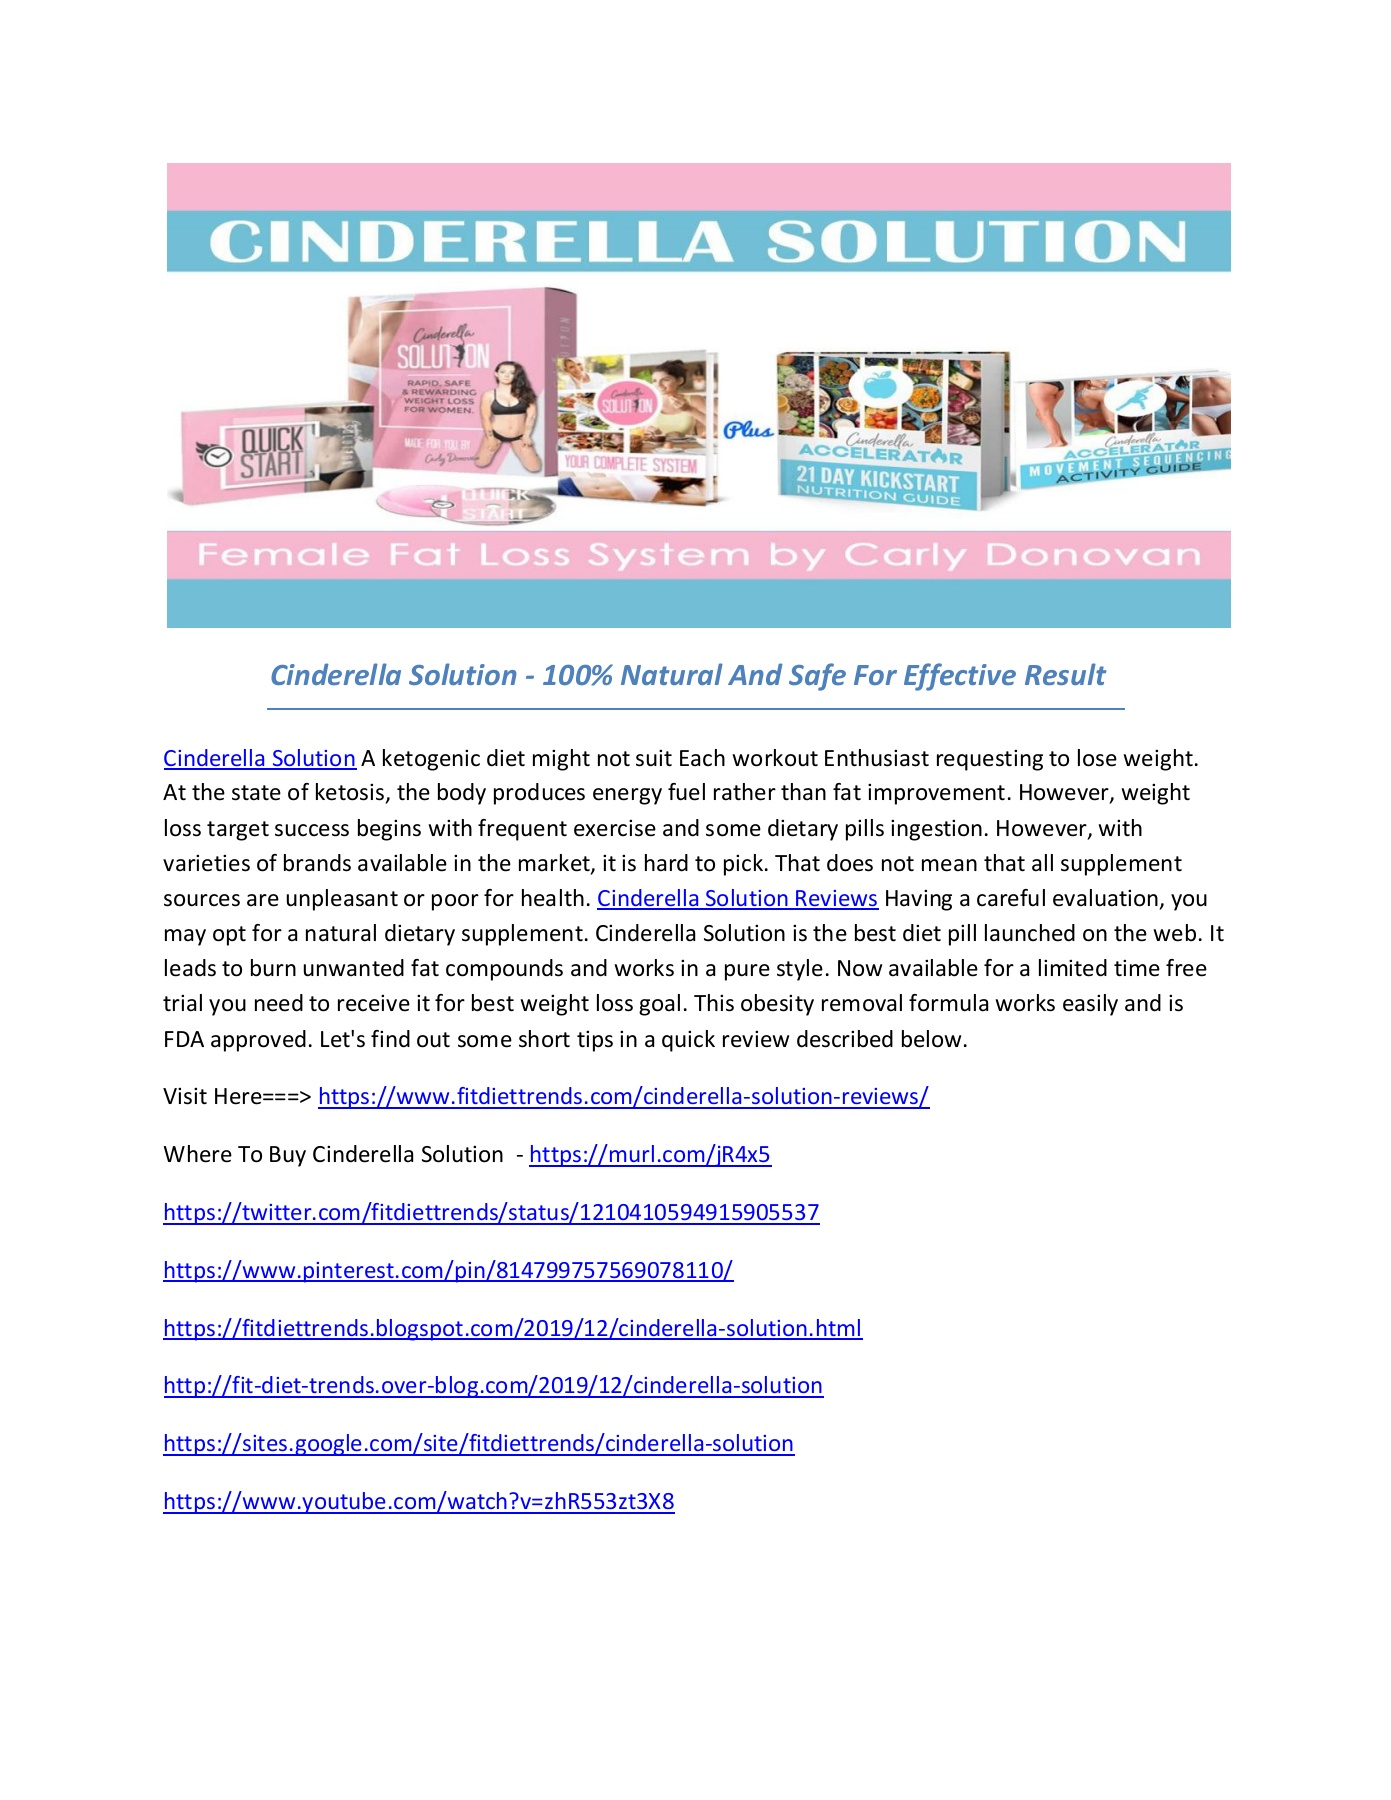 Online Voucher Code 25 Cinderella Solution